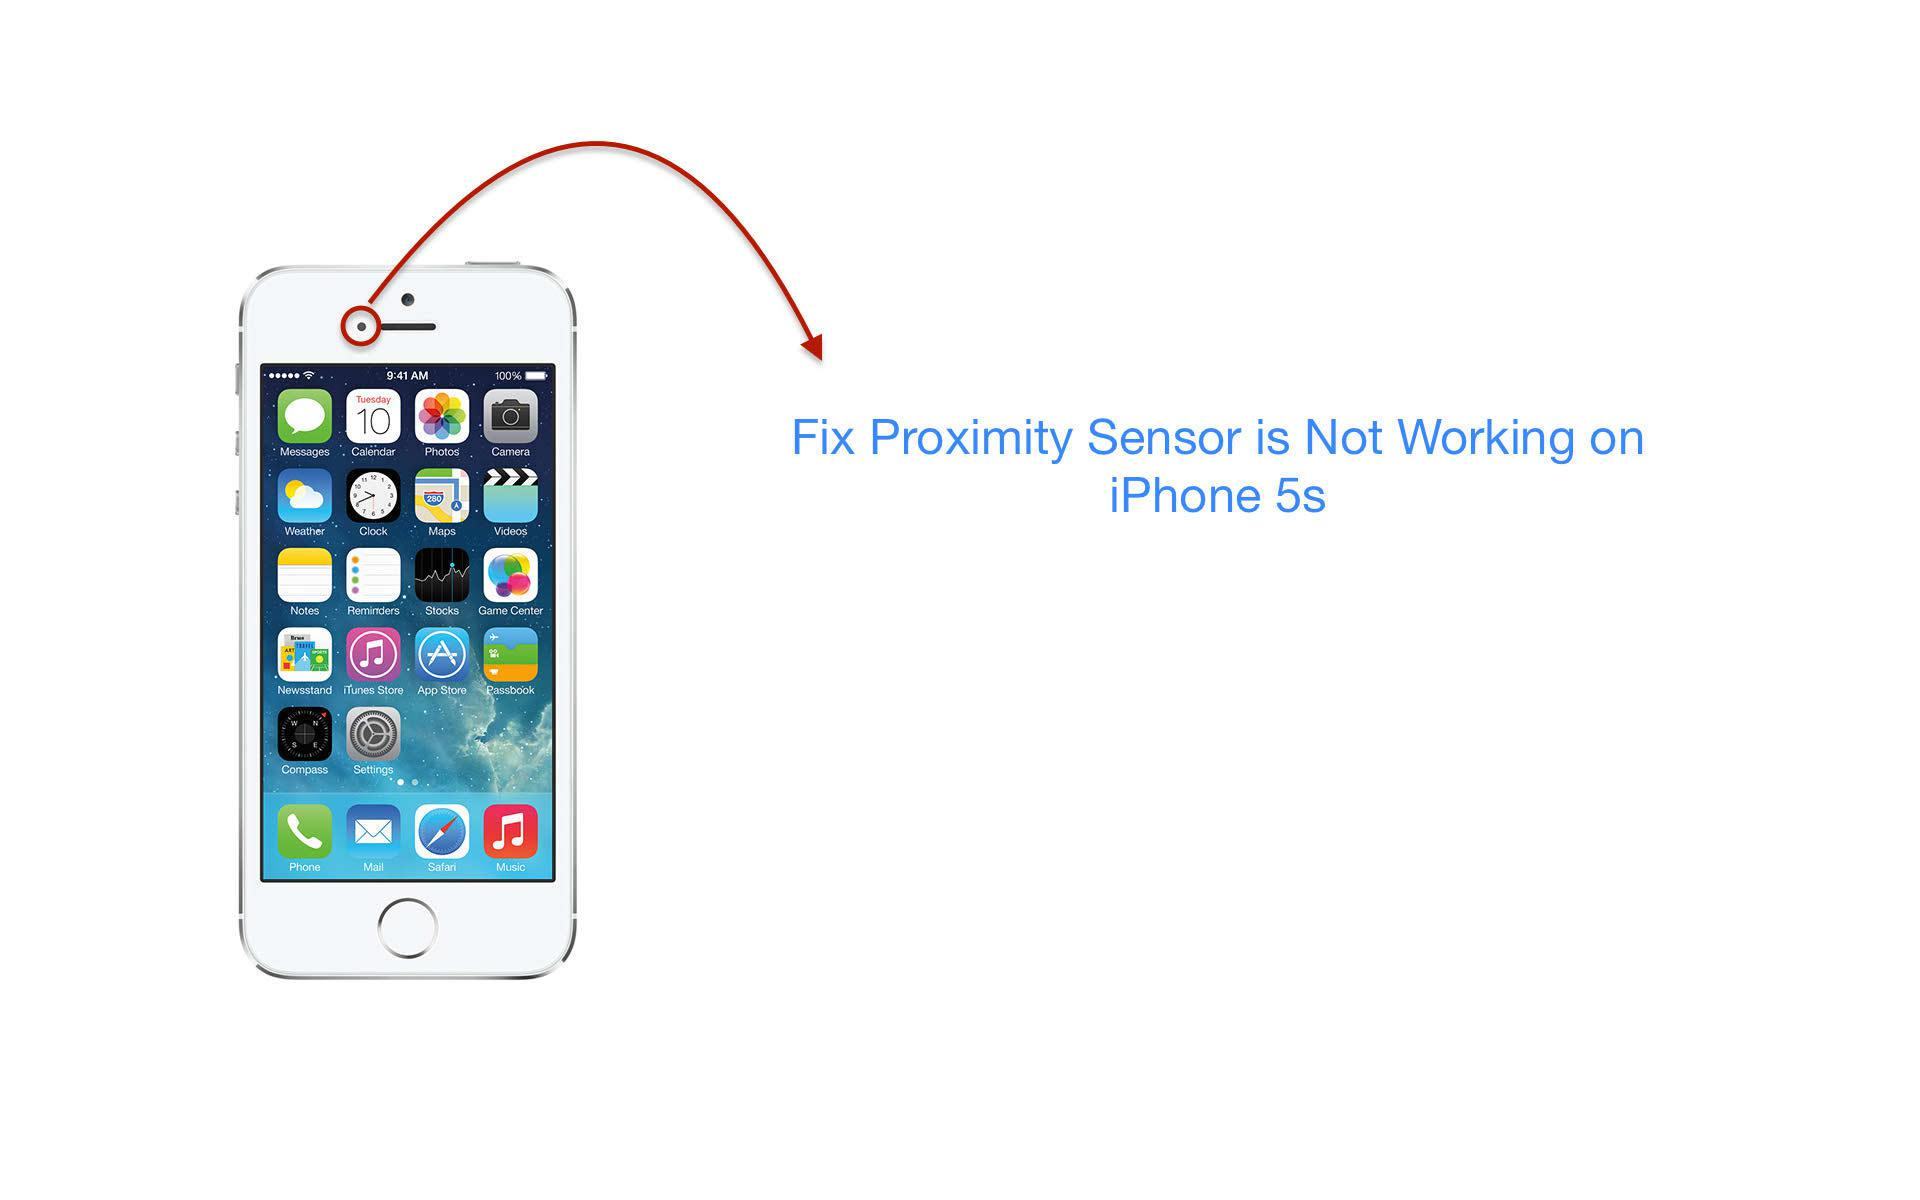 facebook not working on iphone how to fix proximity sensor is not working on iphone 5s 2935